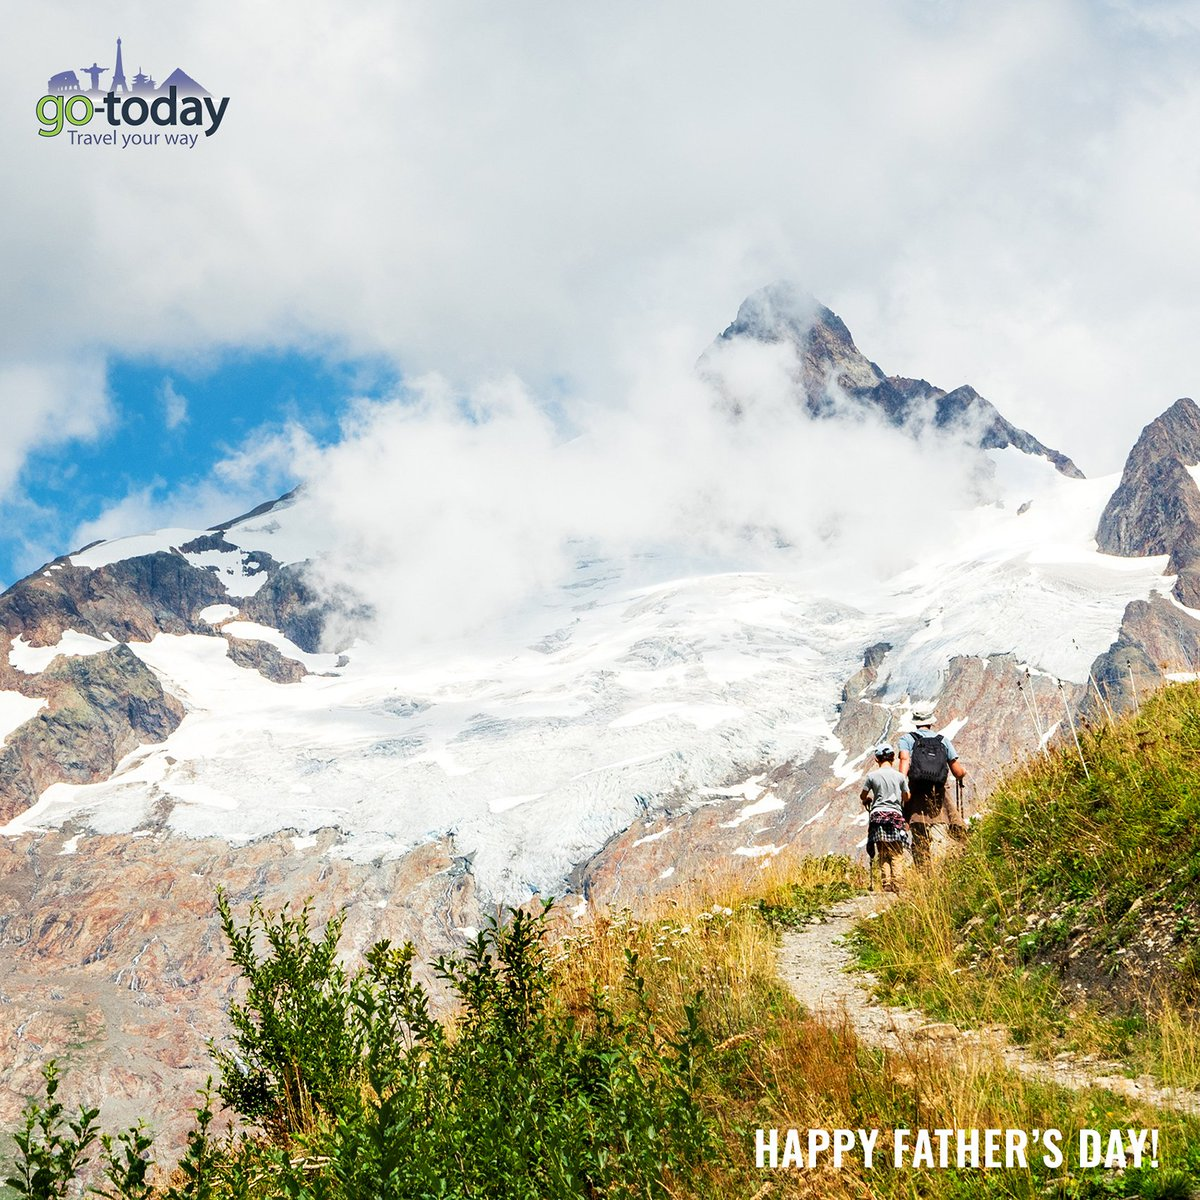 Happy Father's Day! https://t.co/nITHVHmZOI